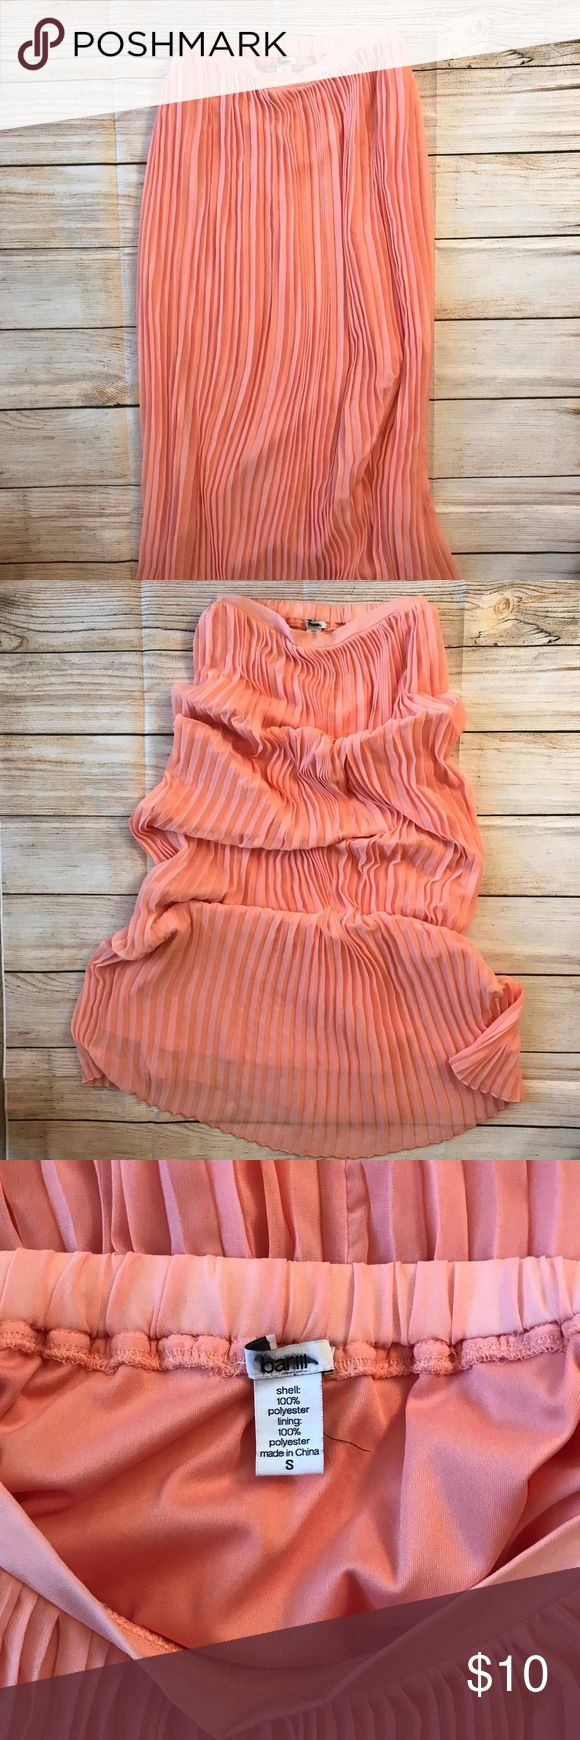 """Bar III 3 Pink Long Pleated Skirt Size Small Long Pleated Skirt in good condition.  Couple snags but barely noticeable. Elastic waistband. Measurements approx Waistband (laid flat, un-stretched, across) 12 1/2"""" Length 39 1/2""""  From a smoke-free home  OBO  (120) Bar III Skirts Maxi"""